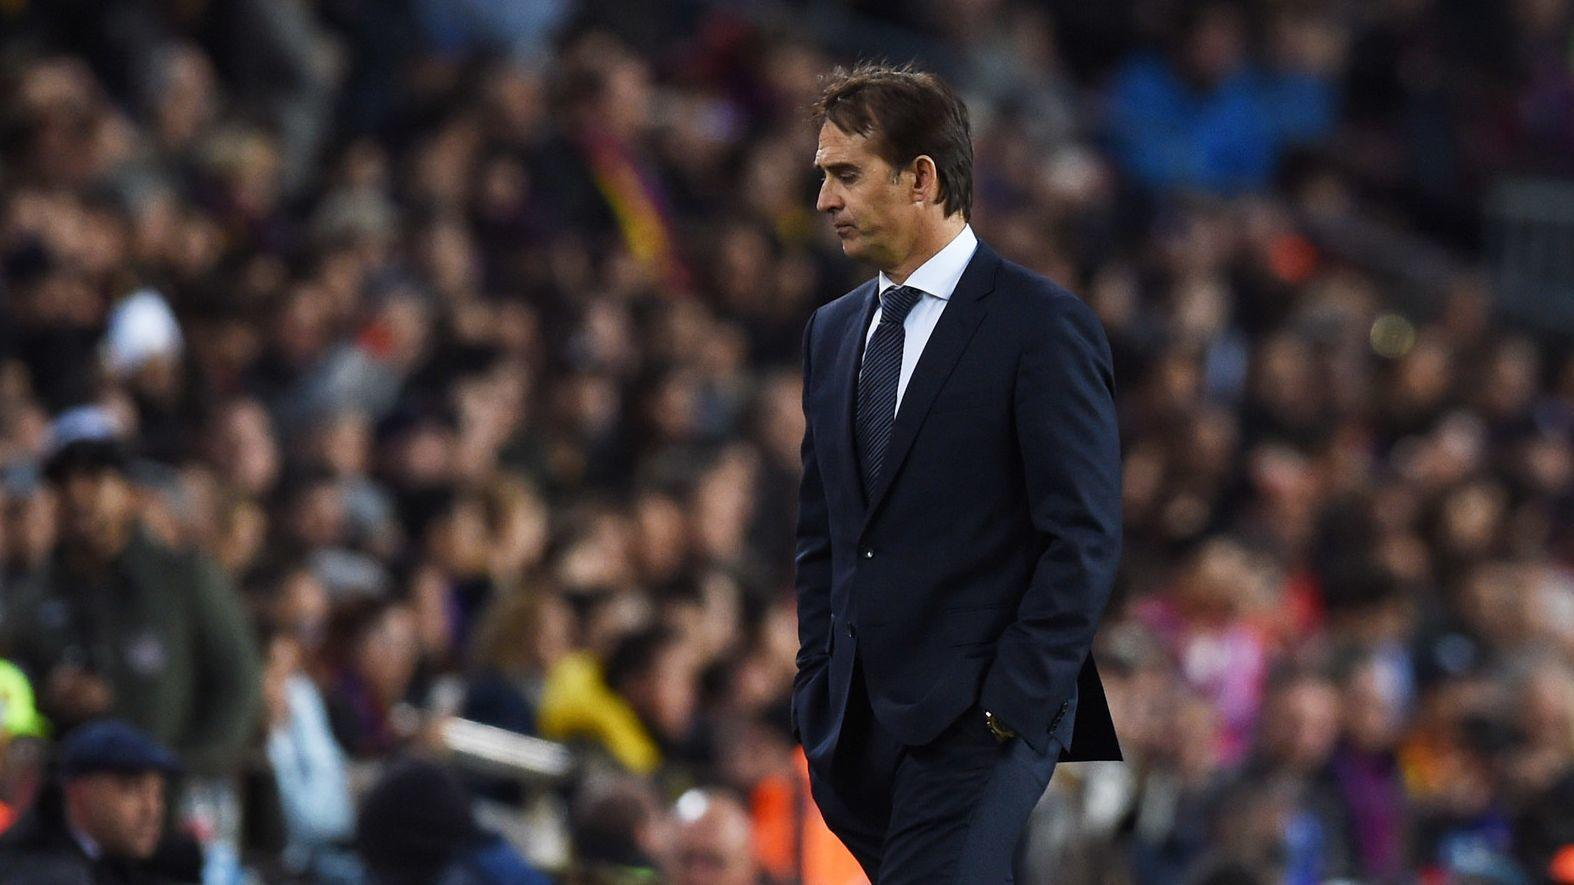 Julen Lopetegui 'Sad' After Barcelona Loss, But Has 'Strength' To Continue As Coach